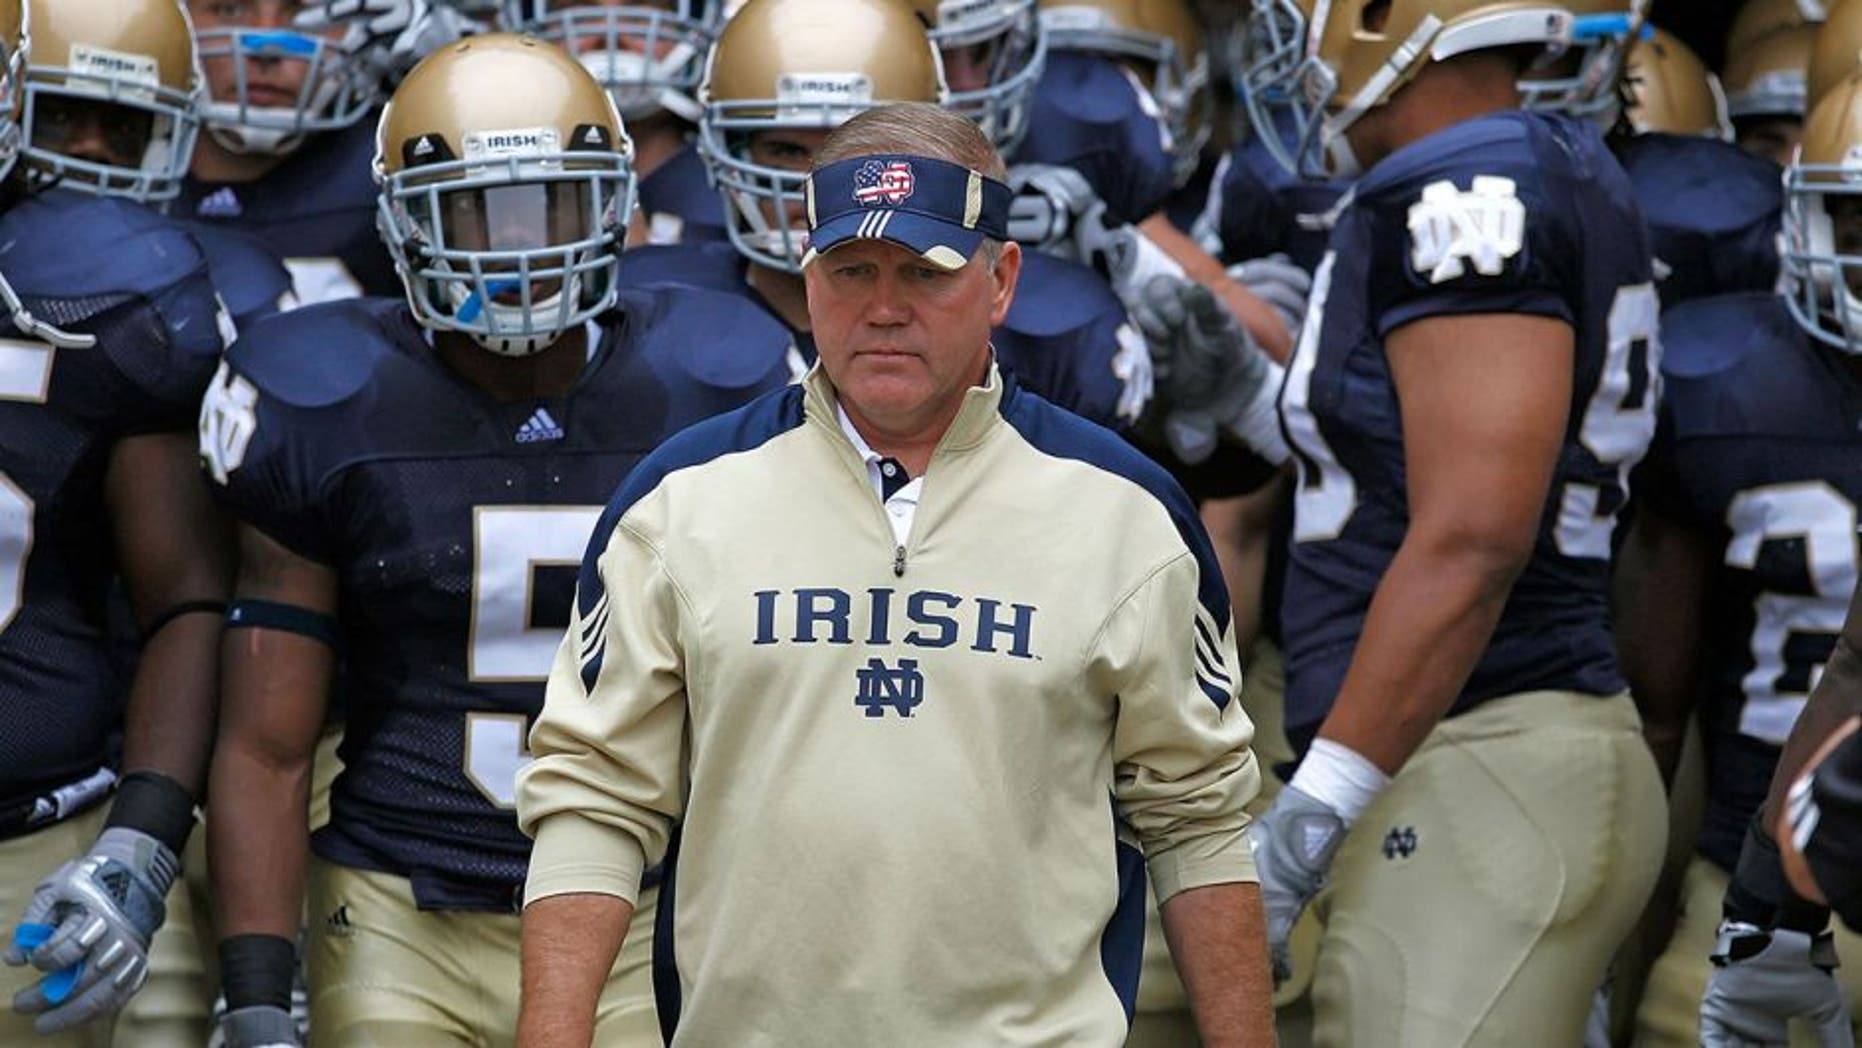 SOUTH BEND, IN - SEPTEMBER 11: Head coach Brian Kelly of the Notre Dame Fighting Irish waits to enter the field with his team before a game against the Michigan Wolverines at Notre Dame Stadium on September 11, 2010 in South Bend, Indiana. Michigan defeated Notre Dame 28-24. (Photo by Jonathan Daniel/Getty Images) *** Local Caption *** Brian Kelly